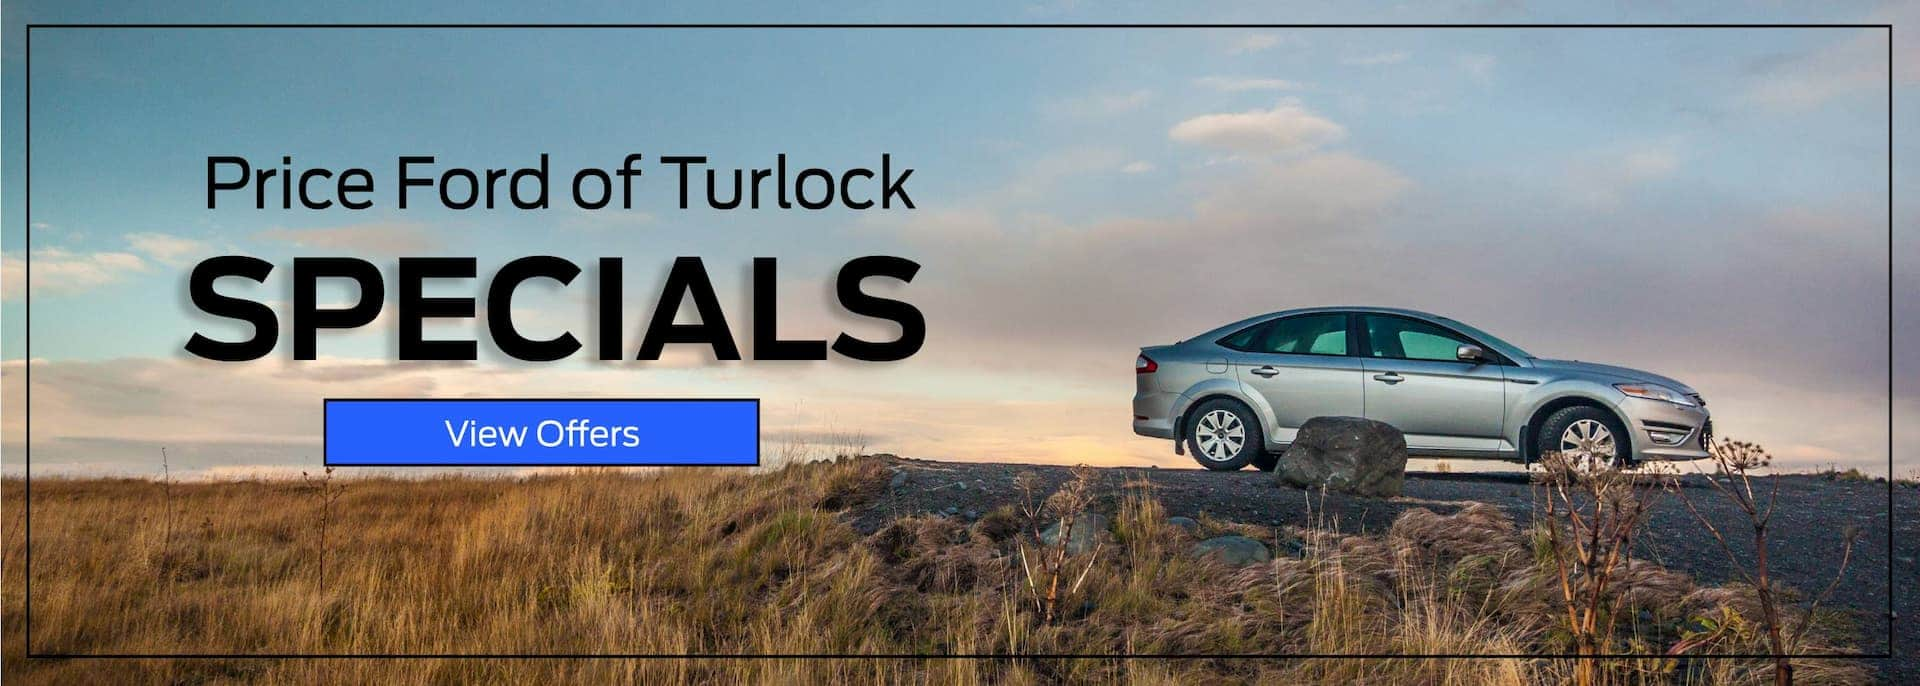 Ford Dealership Modesto >> Price Ford Of Turlock Ford Dealership Turlock Ca Near